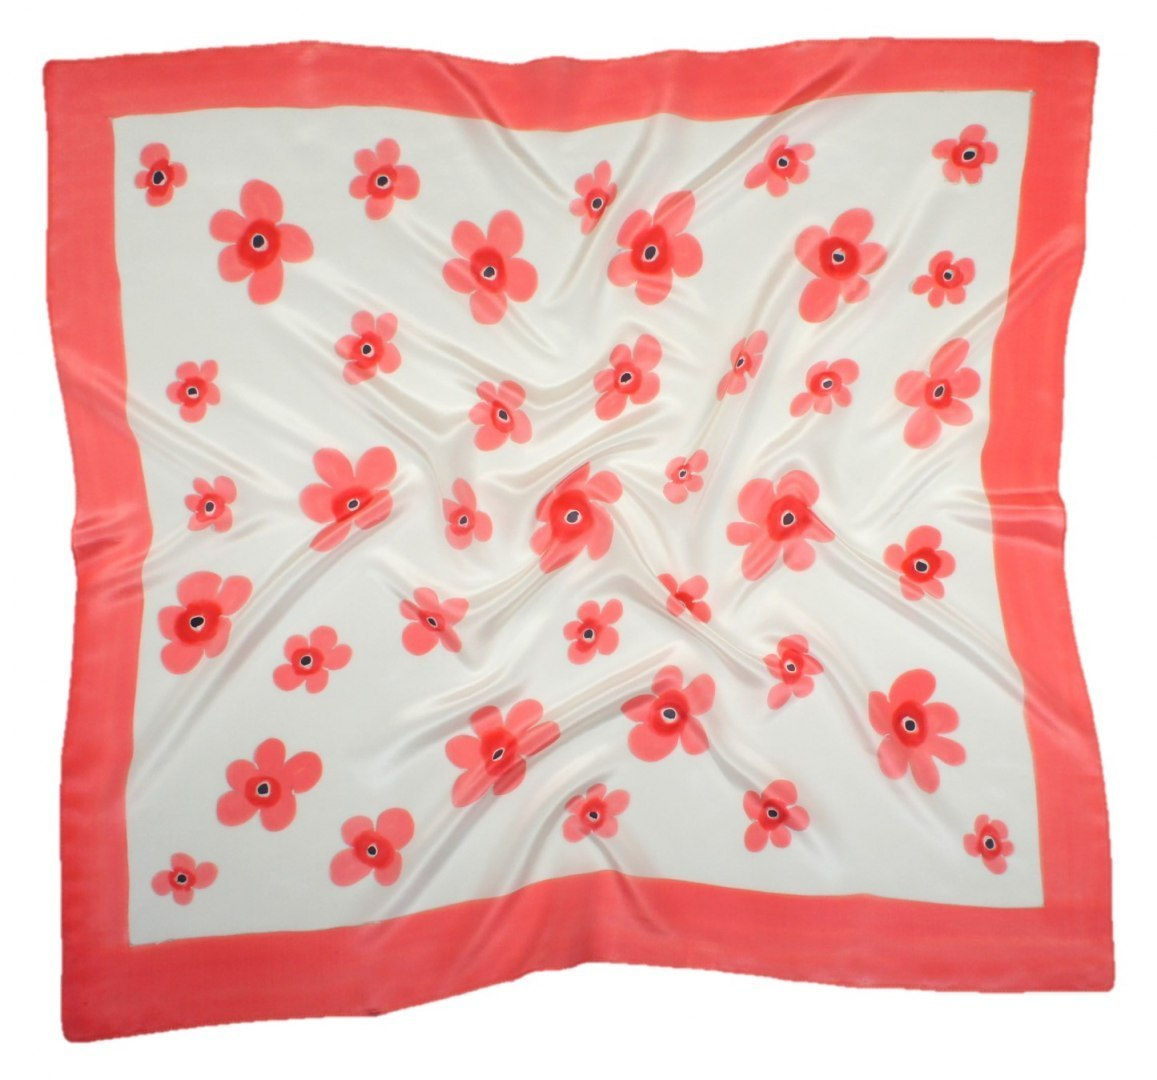 AM-430 Hand-painted silk scarf, 90x90cm